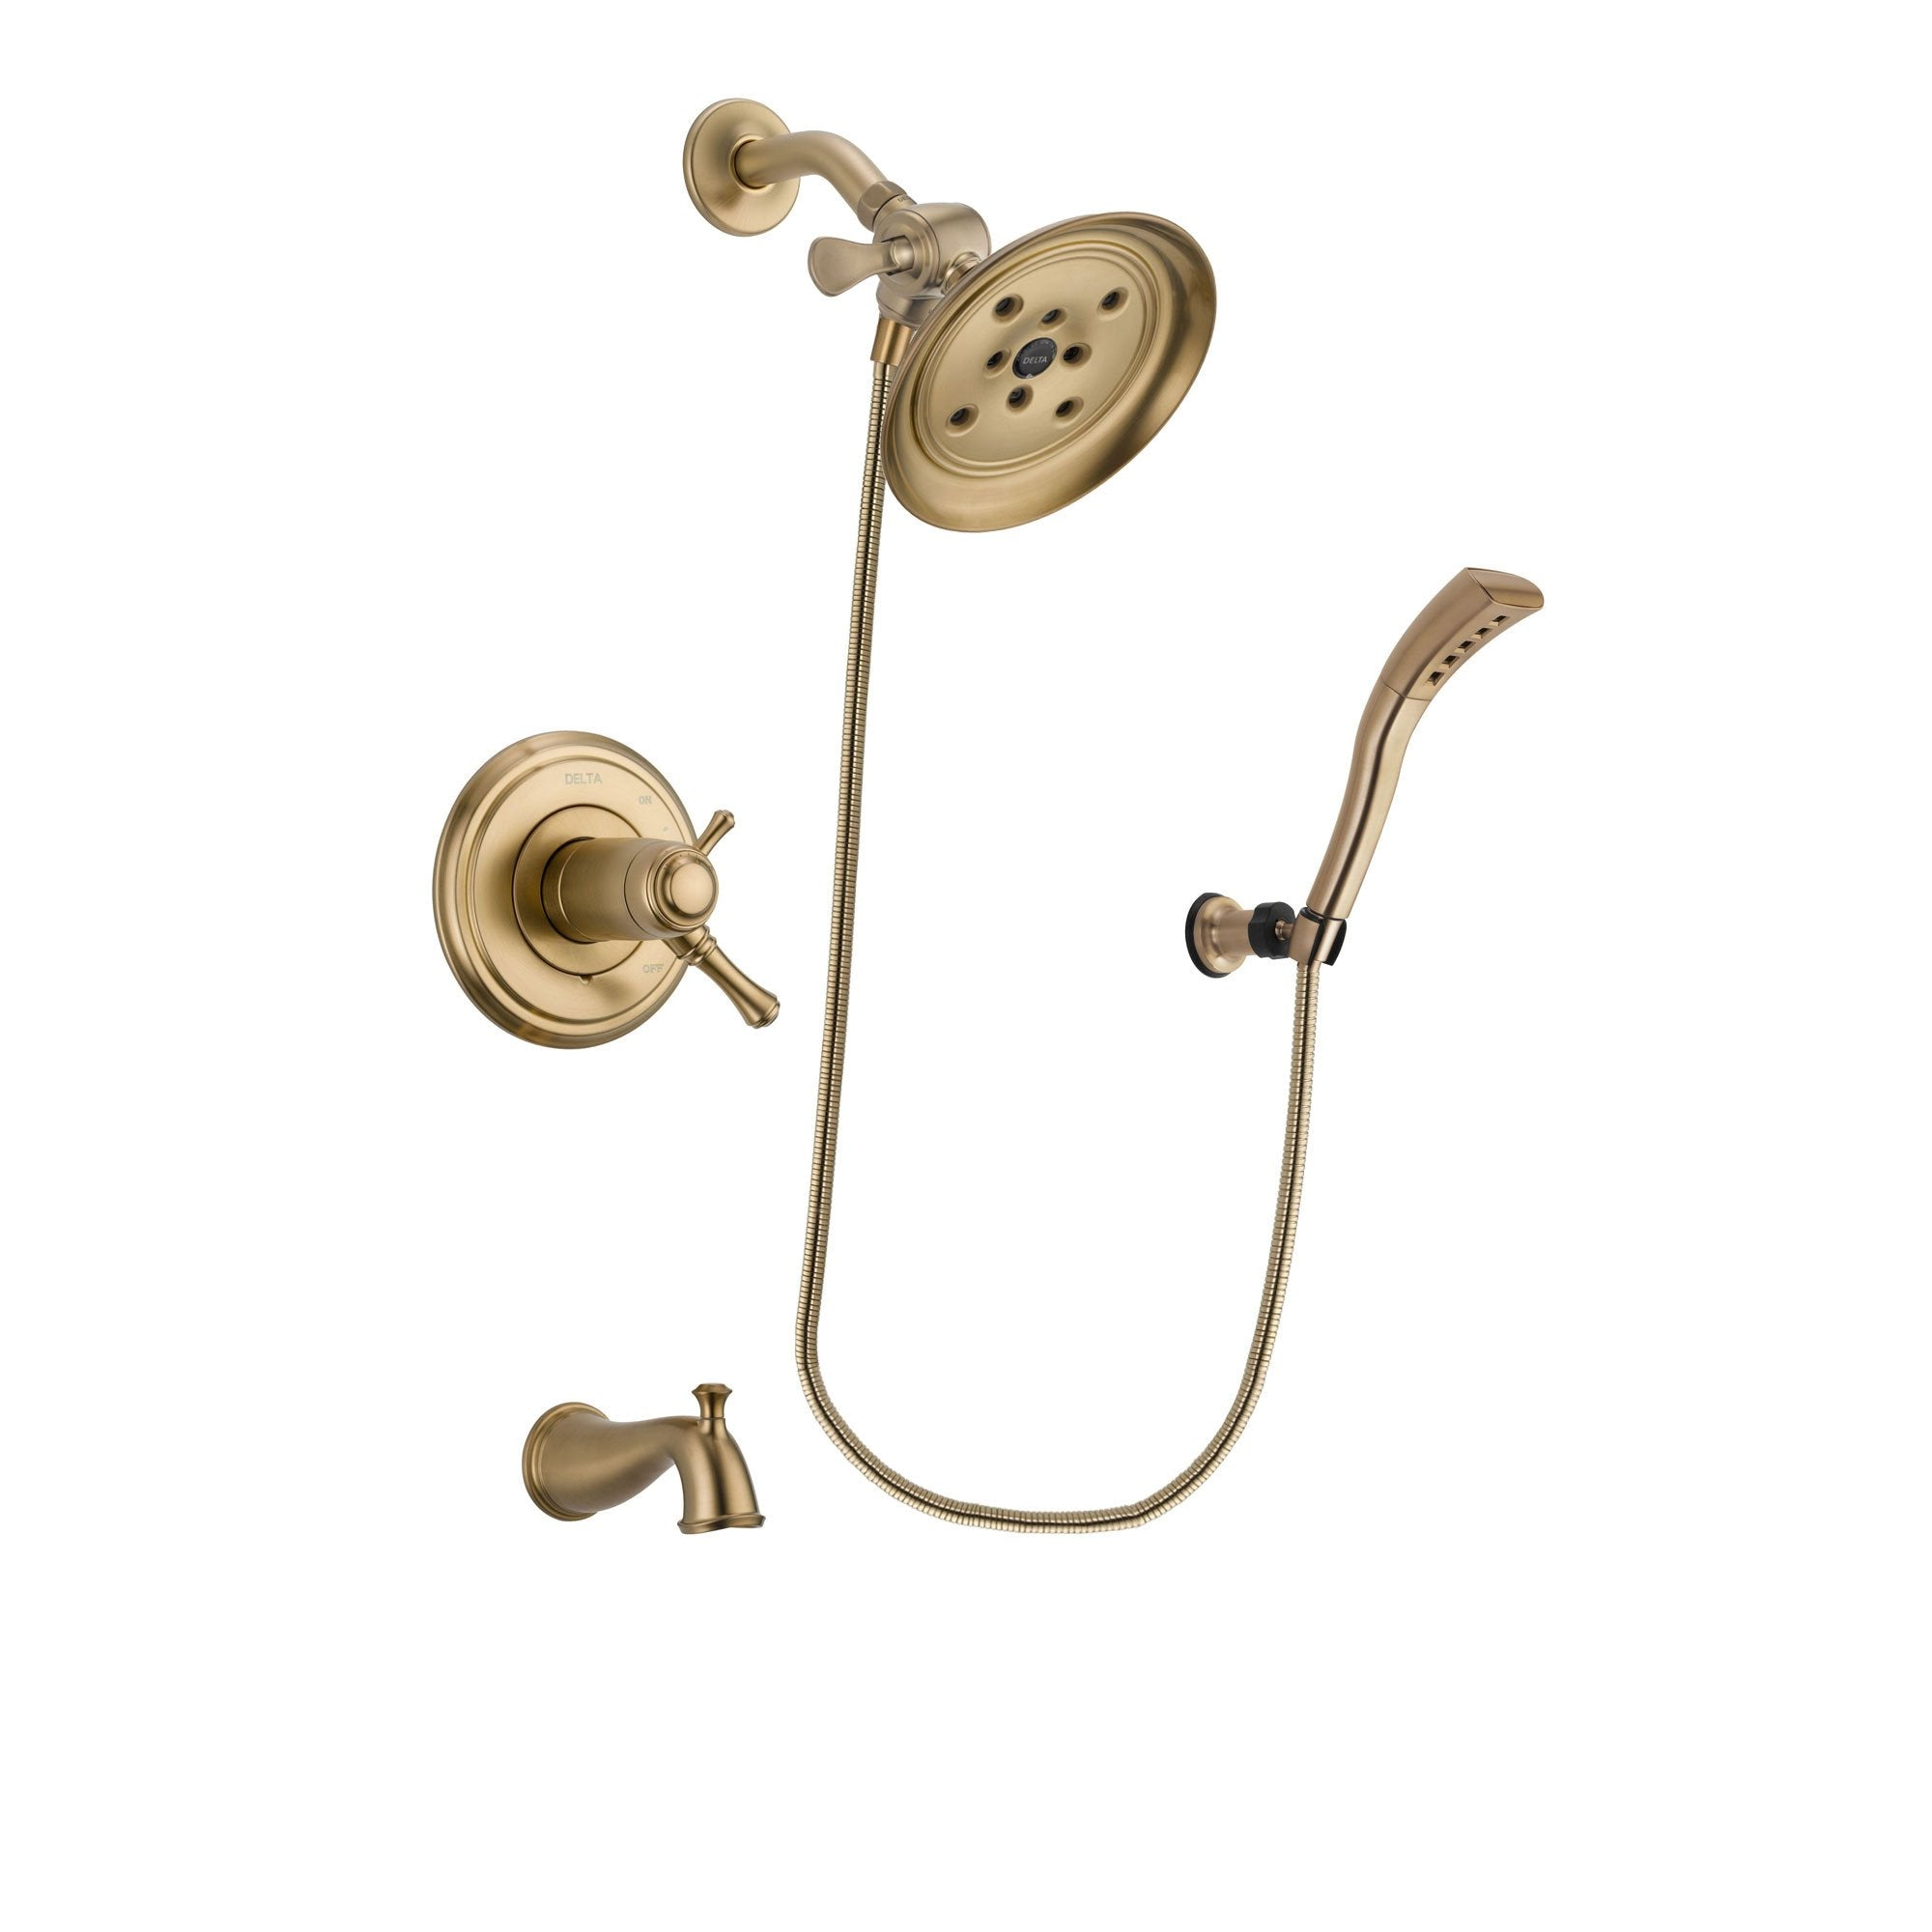 Delta Cassidy Champagne Bronze Finish Thermostatic Tub and Shower Faucet System Package with Large Rain Shower Head and Modern Wall Mount Personal Handheld Shower Spray Includes Rough-in Valve and Tub Spout DSP3687V